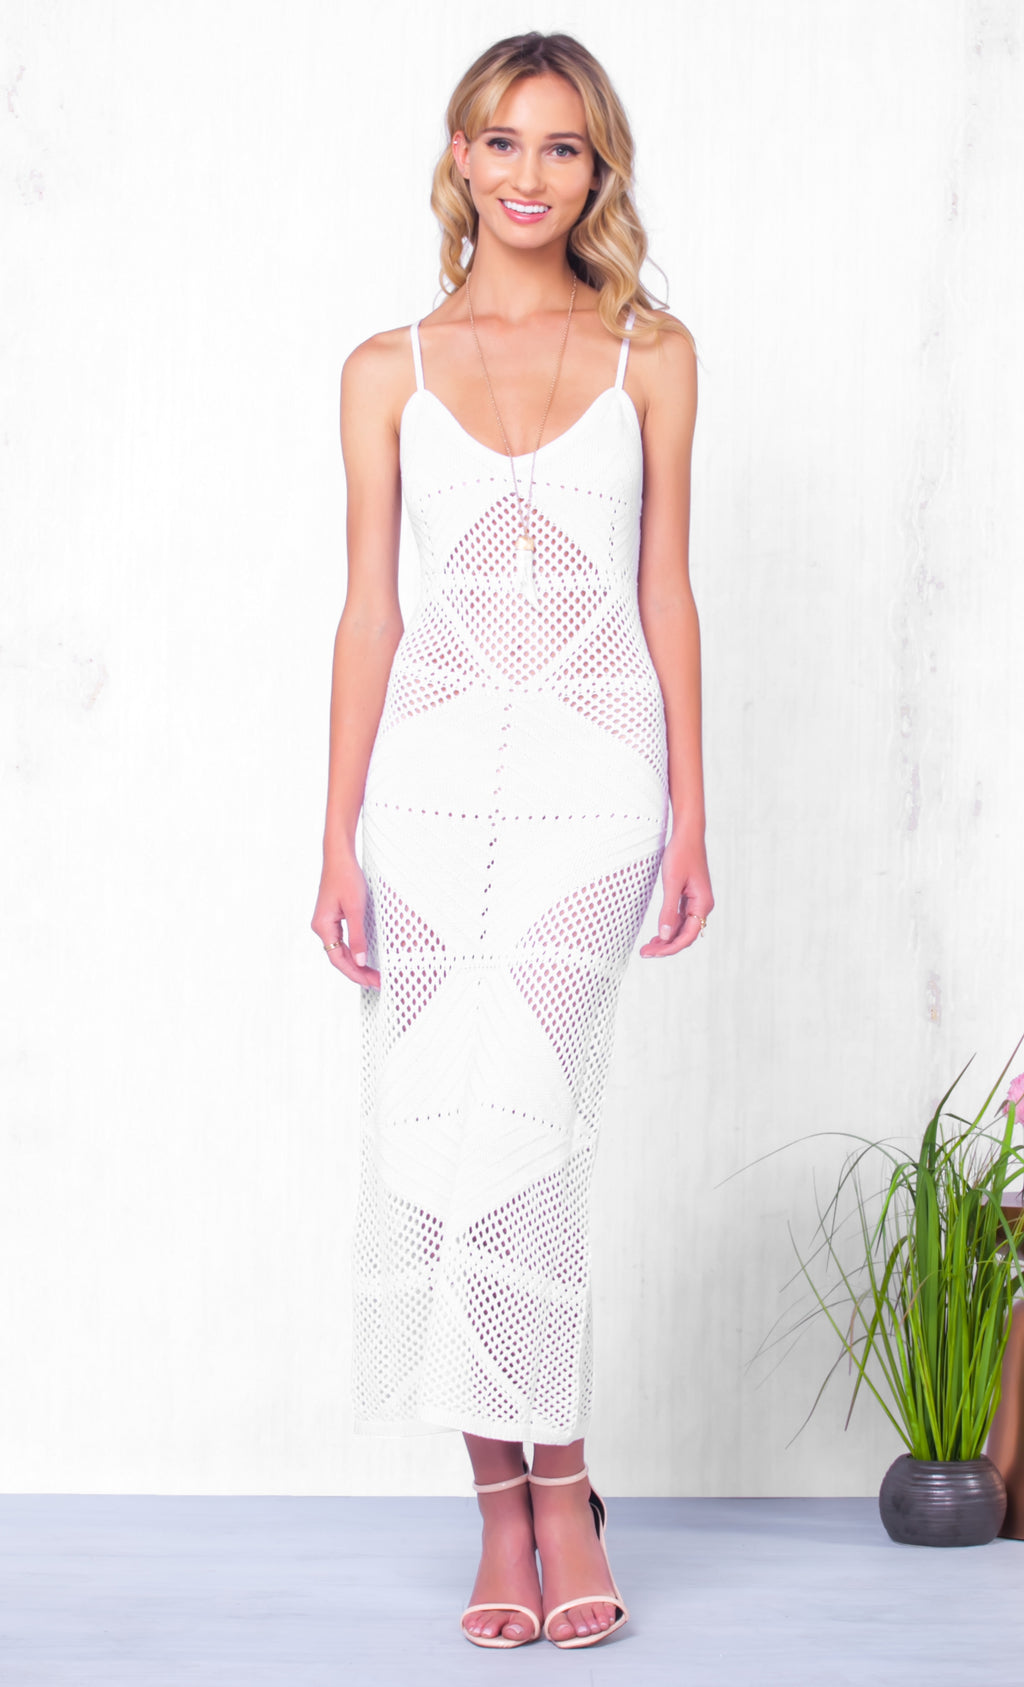 a541422130 Indie XO Sweet Escape White Geometric Cut Out Crochet Sleeveless Spaghetti  Strap V Neck Bodycon Casual